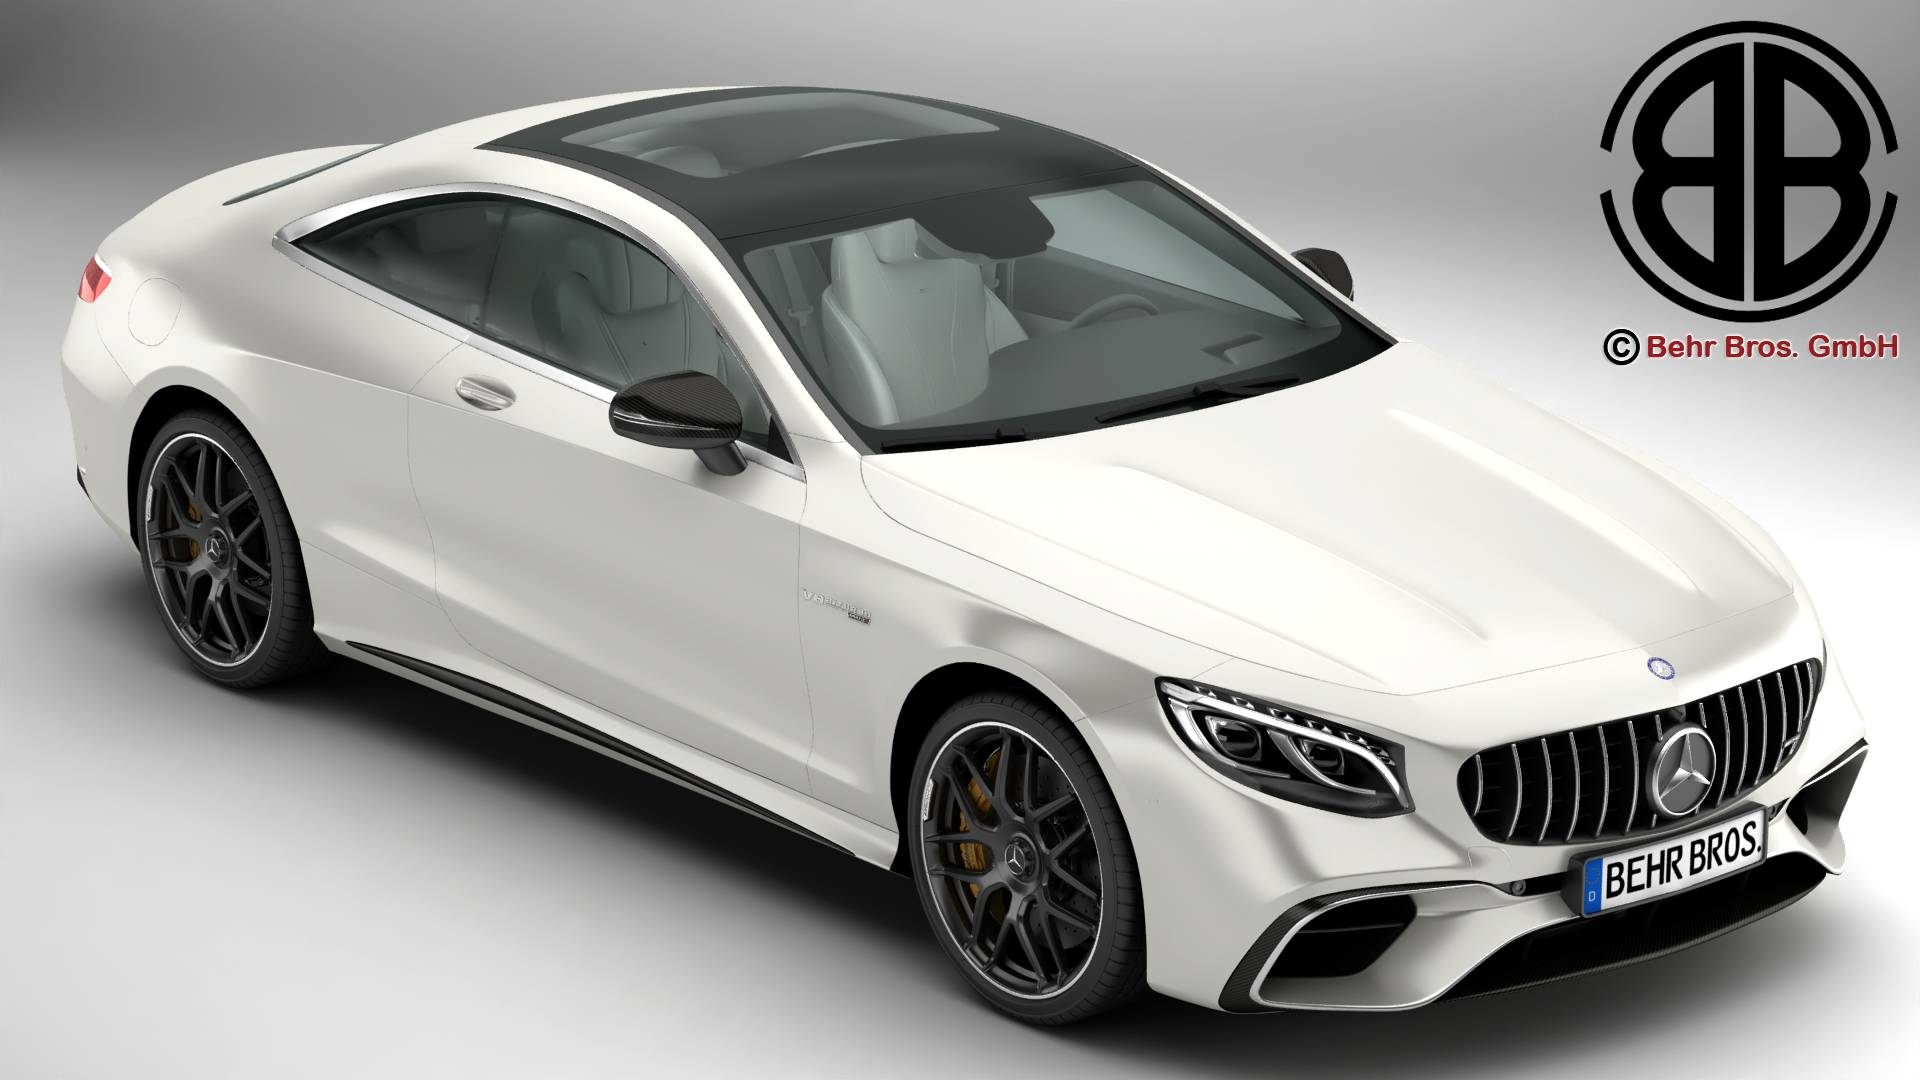 mercedes s coupe dosbarth amg s63 2018 model 3d 3ds max fbx c4d am fwy o wybodaeth 274090